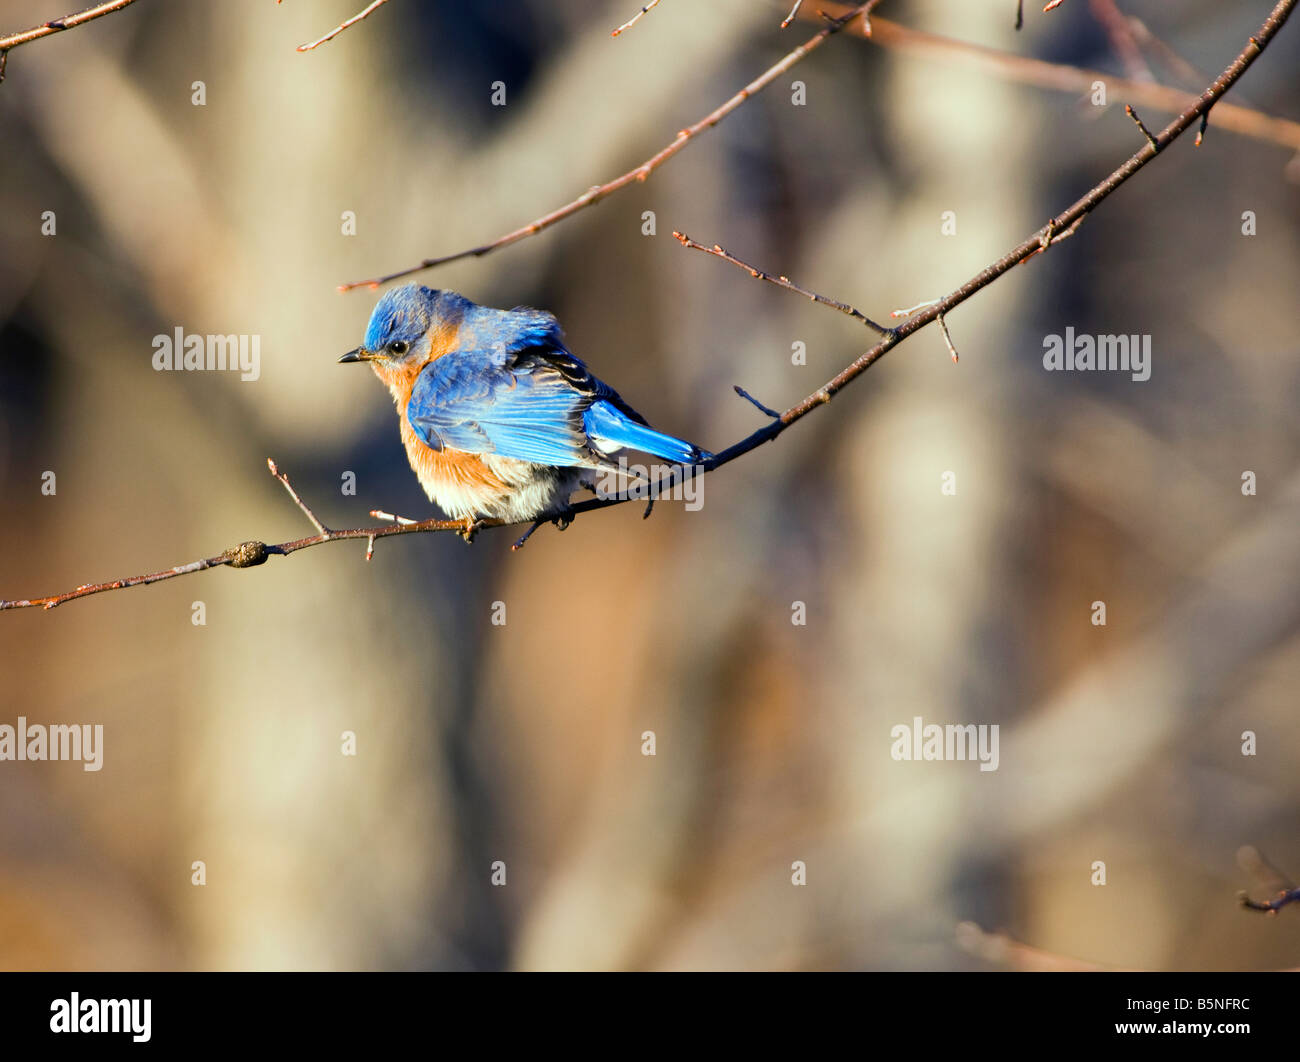 The Eastern Bluebird Sialia sialis is a medium sized thrush found in open woodlands farmlands and orchards. - Stock Image